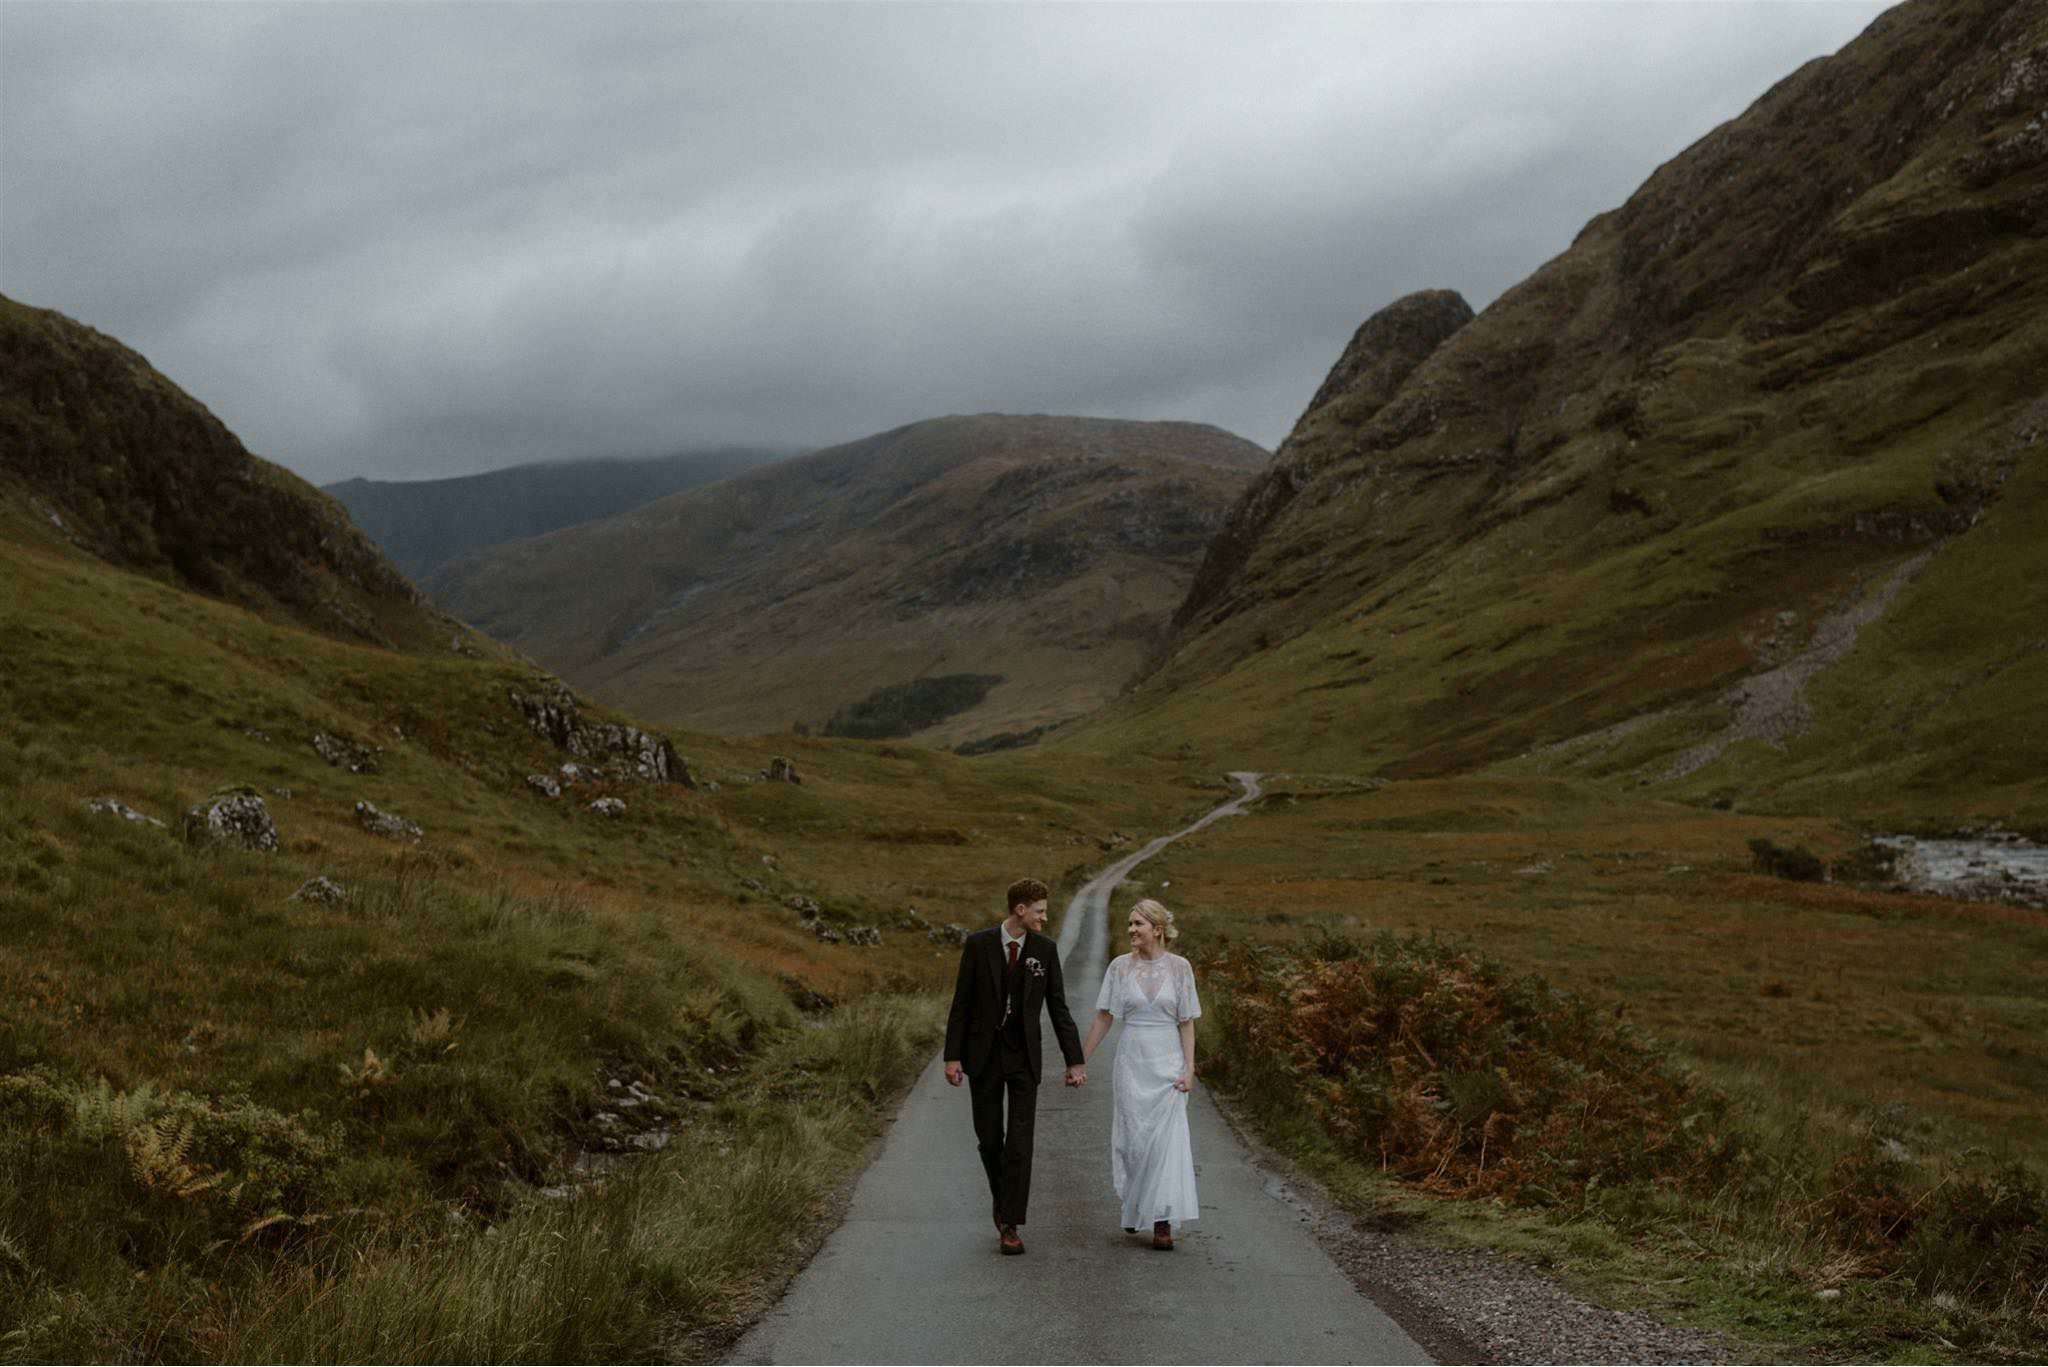 Bride and groom walk down road in Glen Etive after their elopement wedding in Scotland